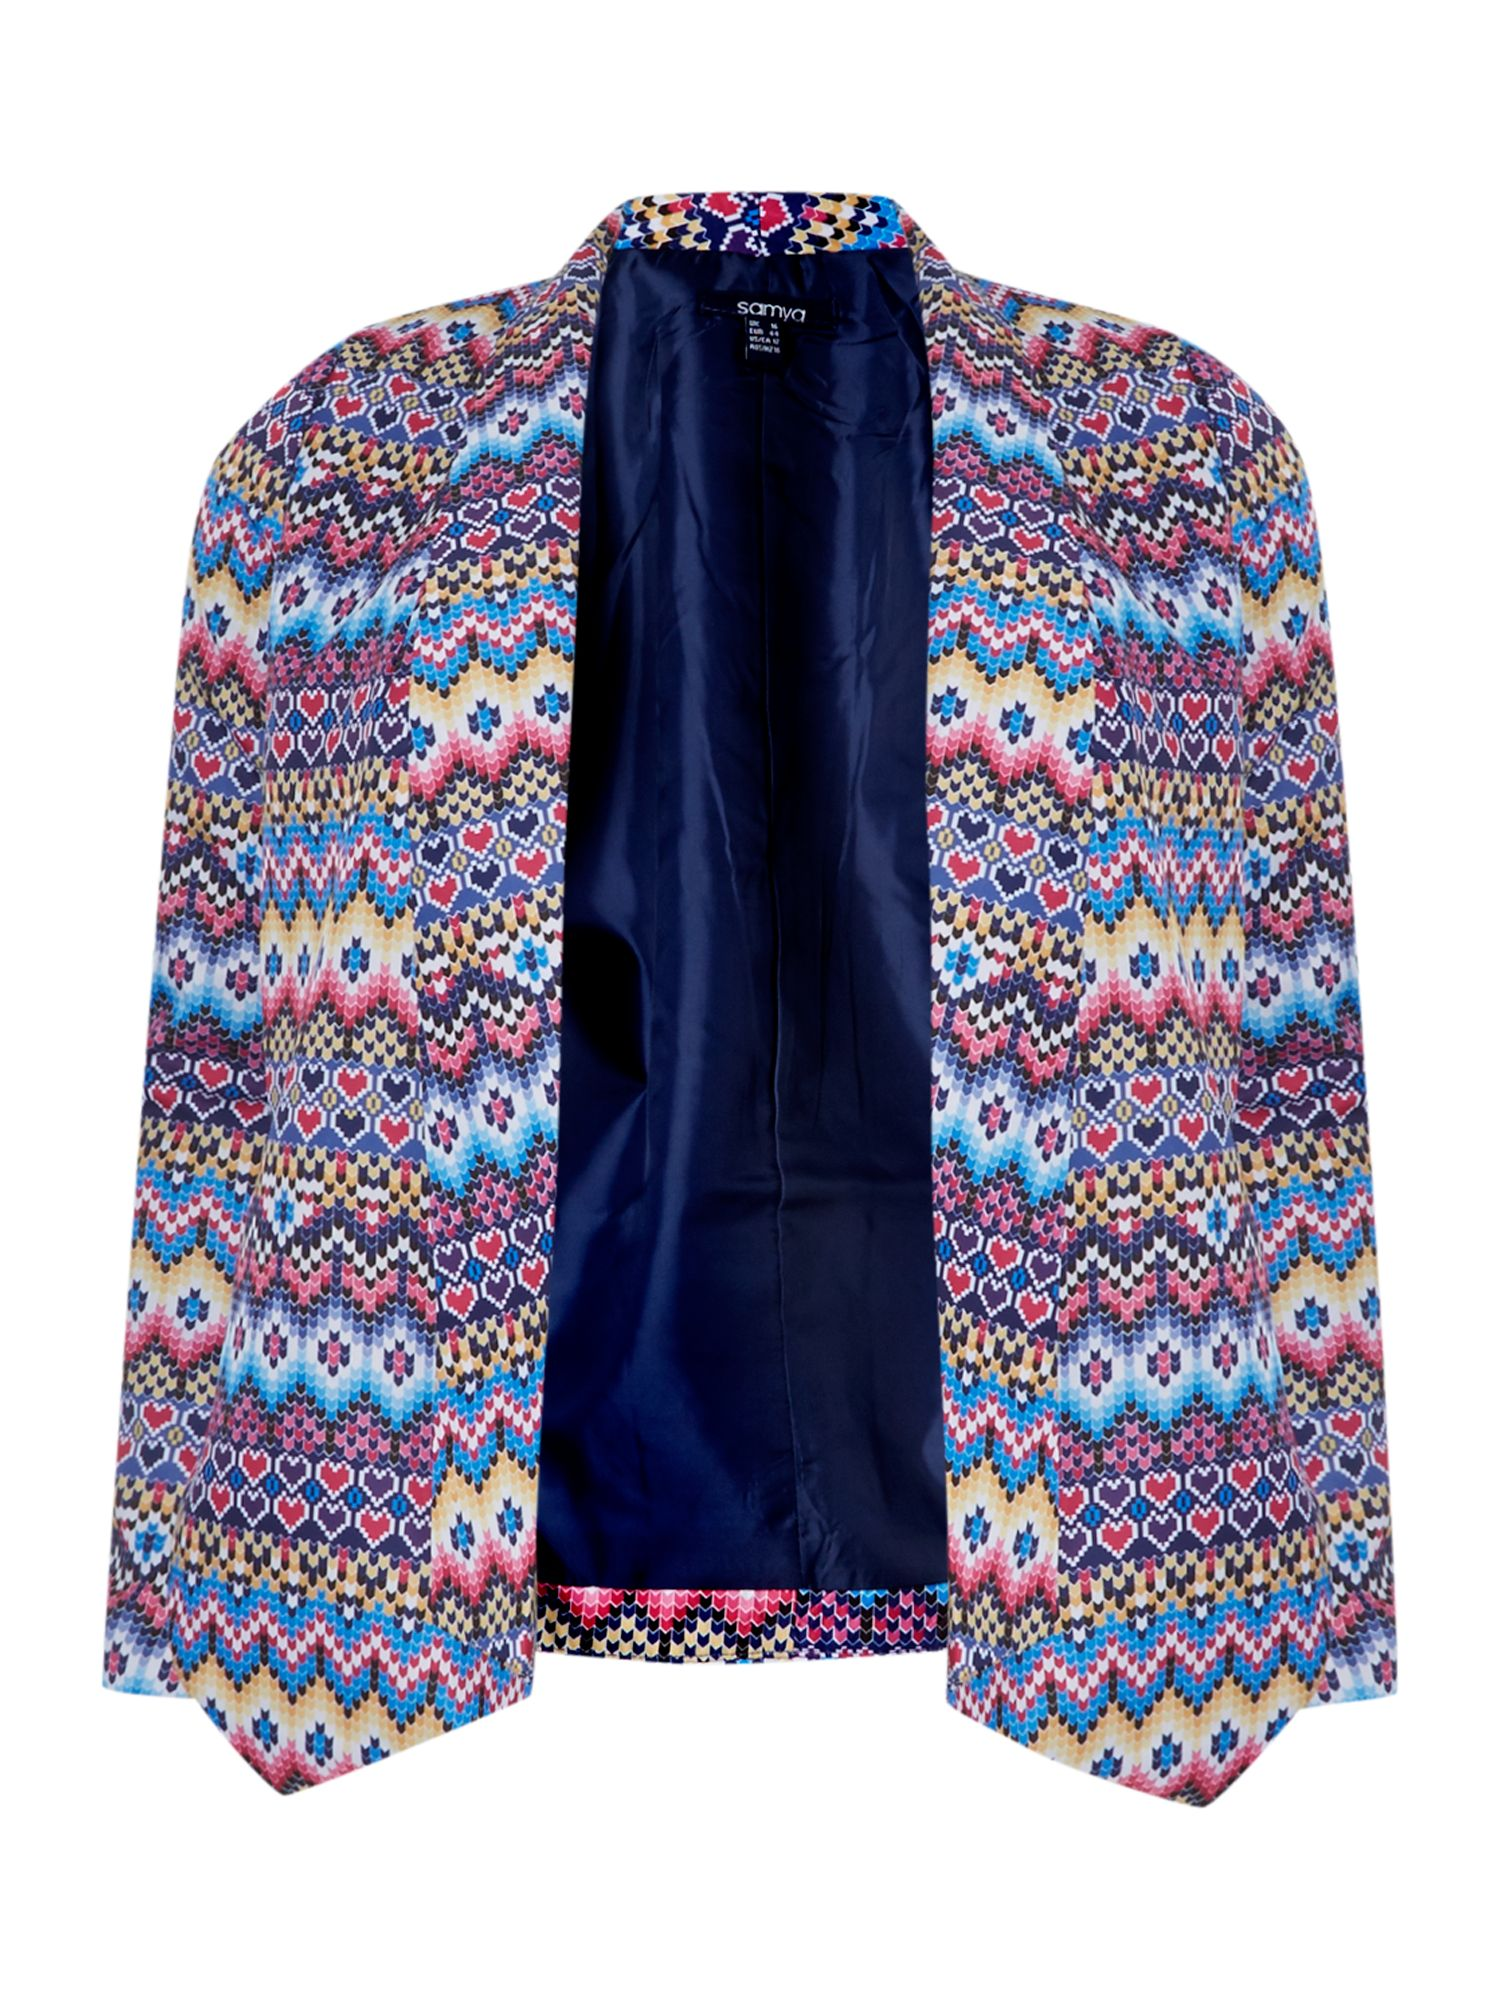 Multi pattern lapel jacket